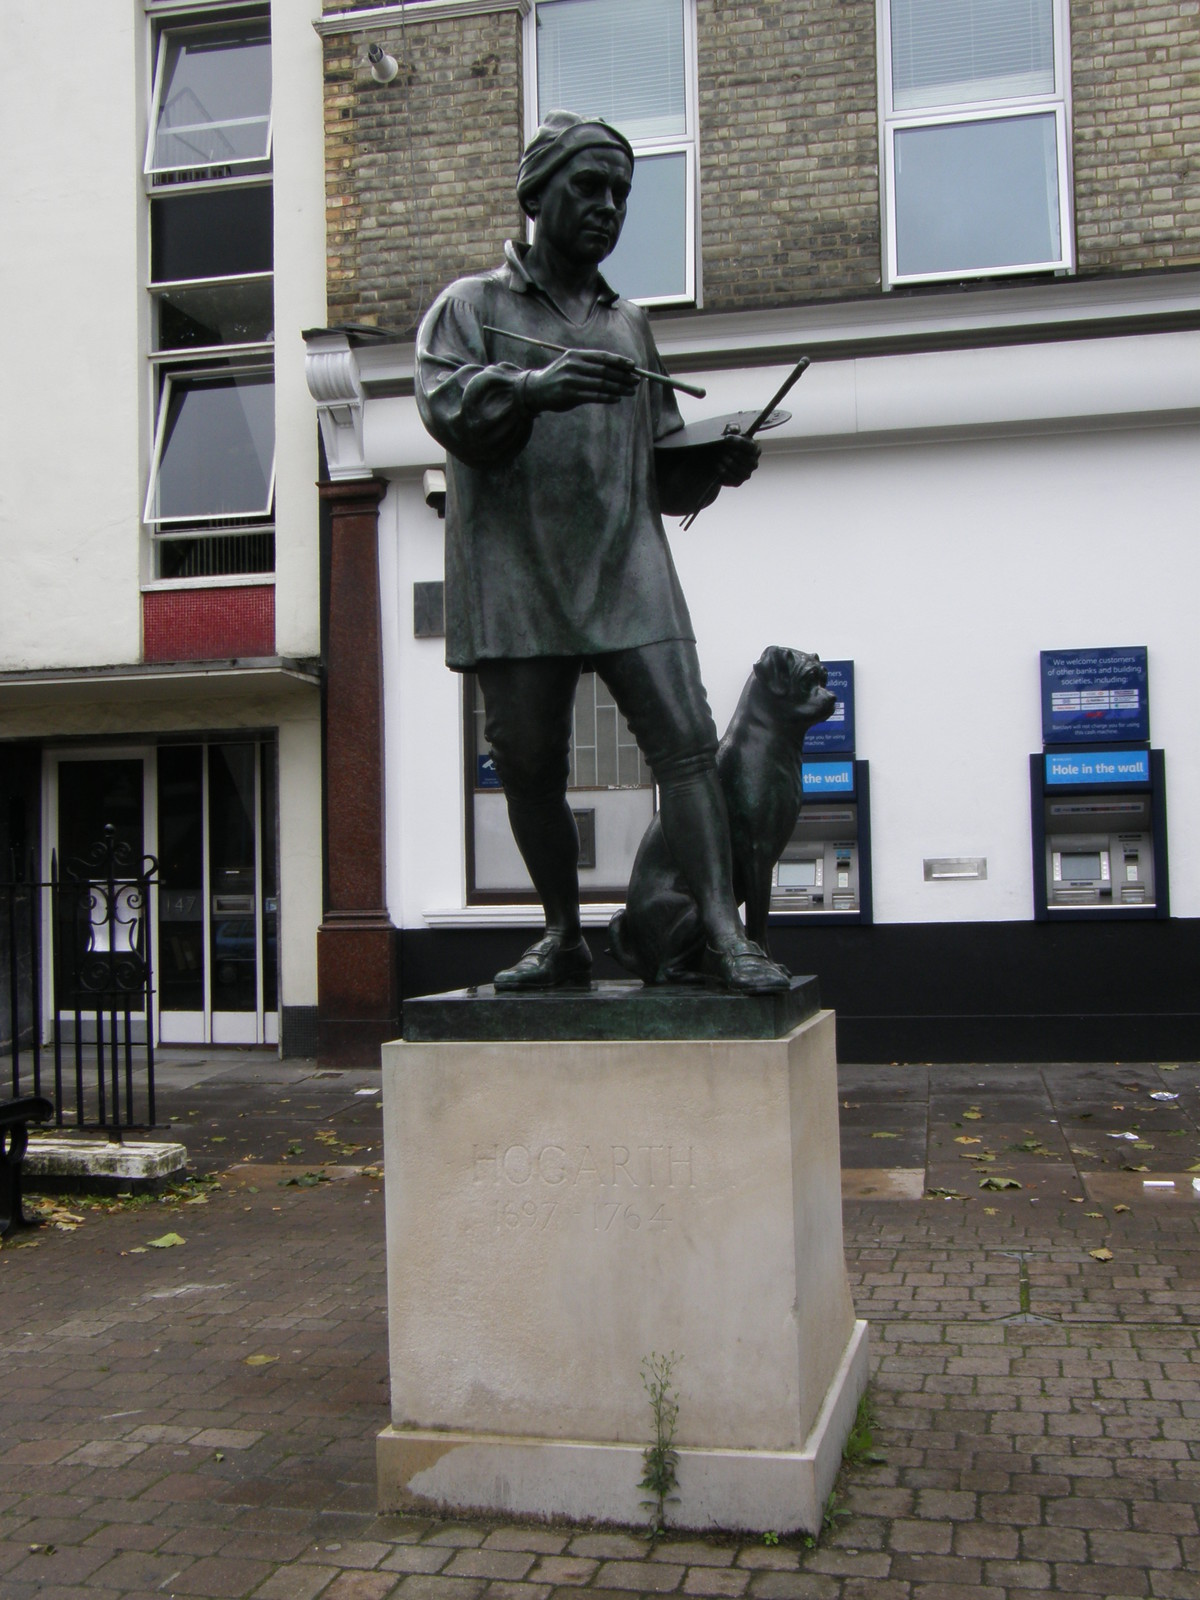 The statue of William Hogarth on Chiswick High Road